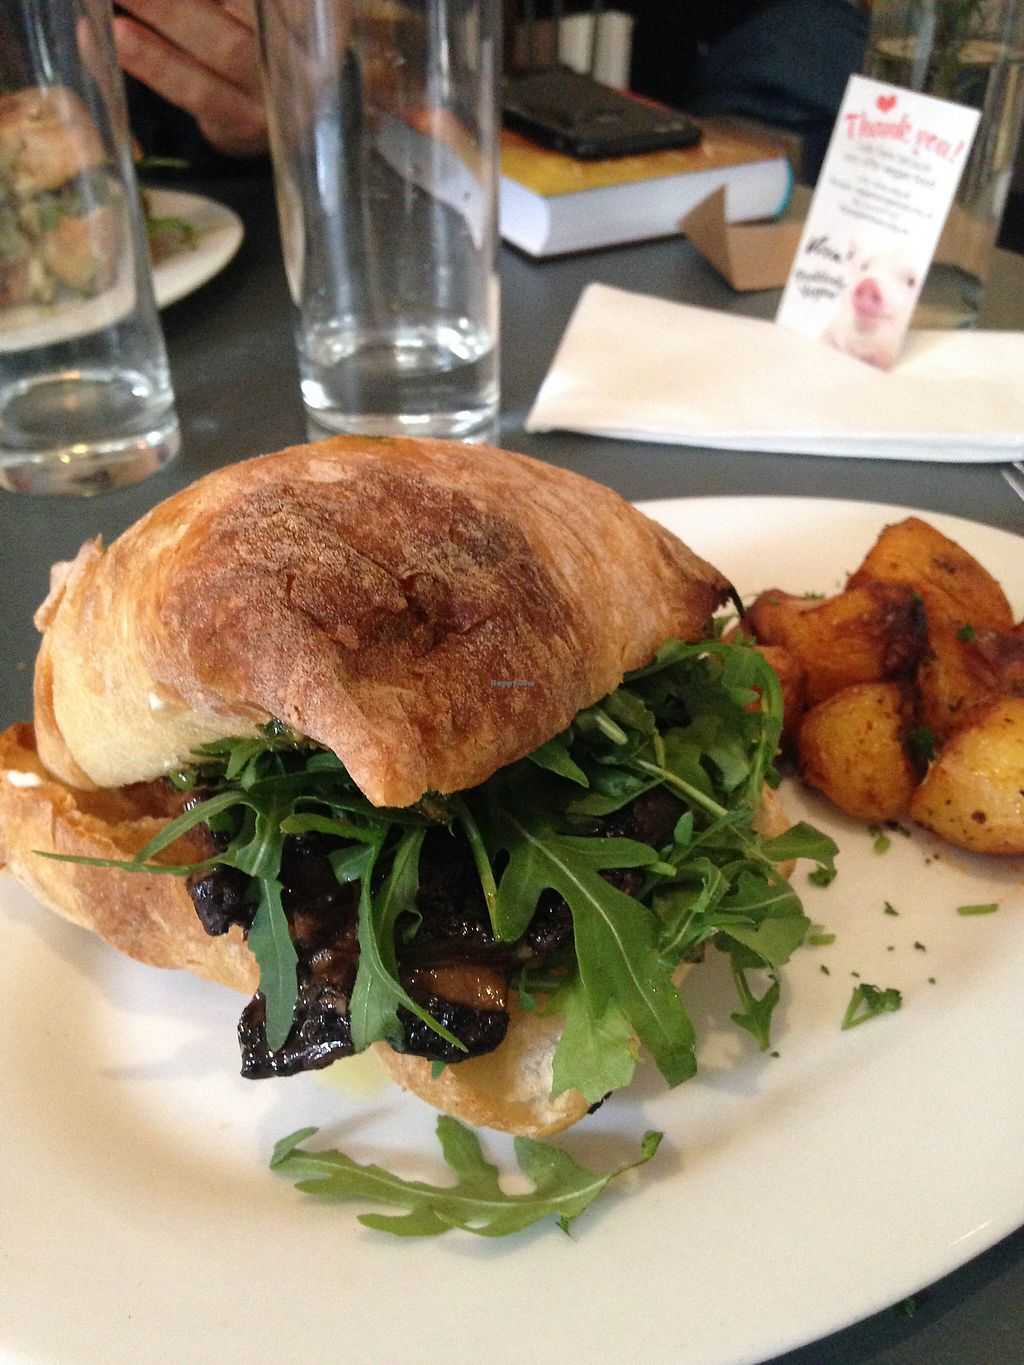 "Photo of Chapel Arts Cafe  by <a href=""/members/profile/FranMcgarryArtist"">FranMcgarryArtist</a> <br/>Amazing Vegan Mushroom Burger <br/> May 13, 2017  - <a href='/contact/abuse/image/28449/258471'>Report</a>"